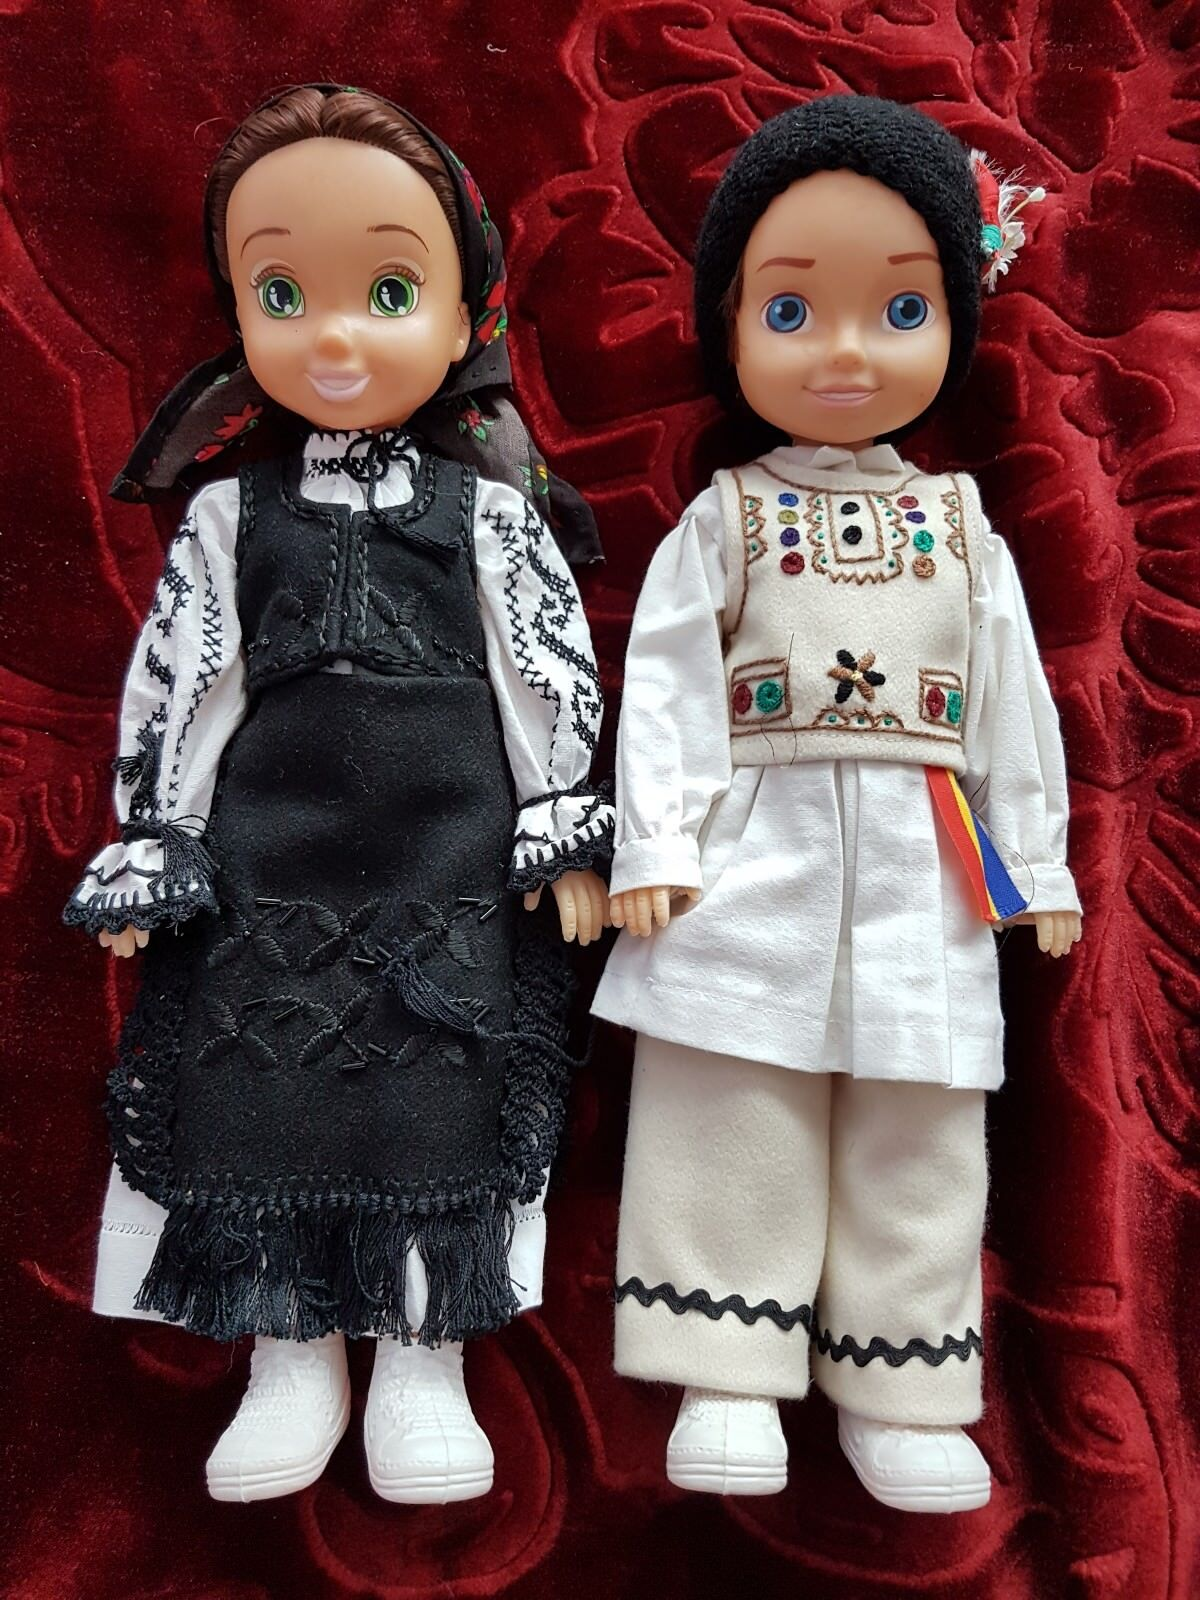 Vintage doll couple Romanian traditional outfit